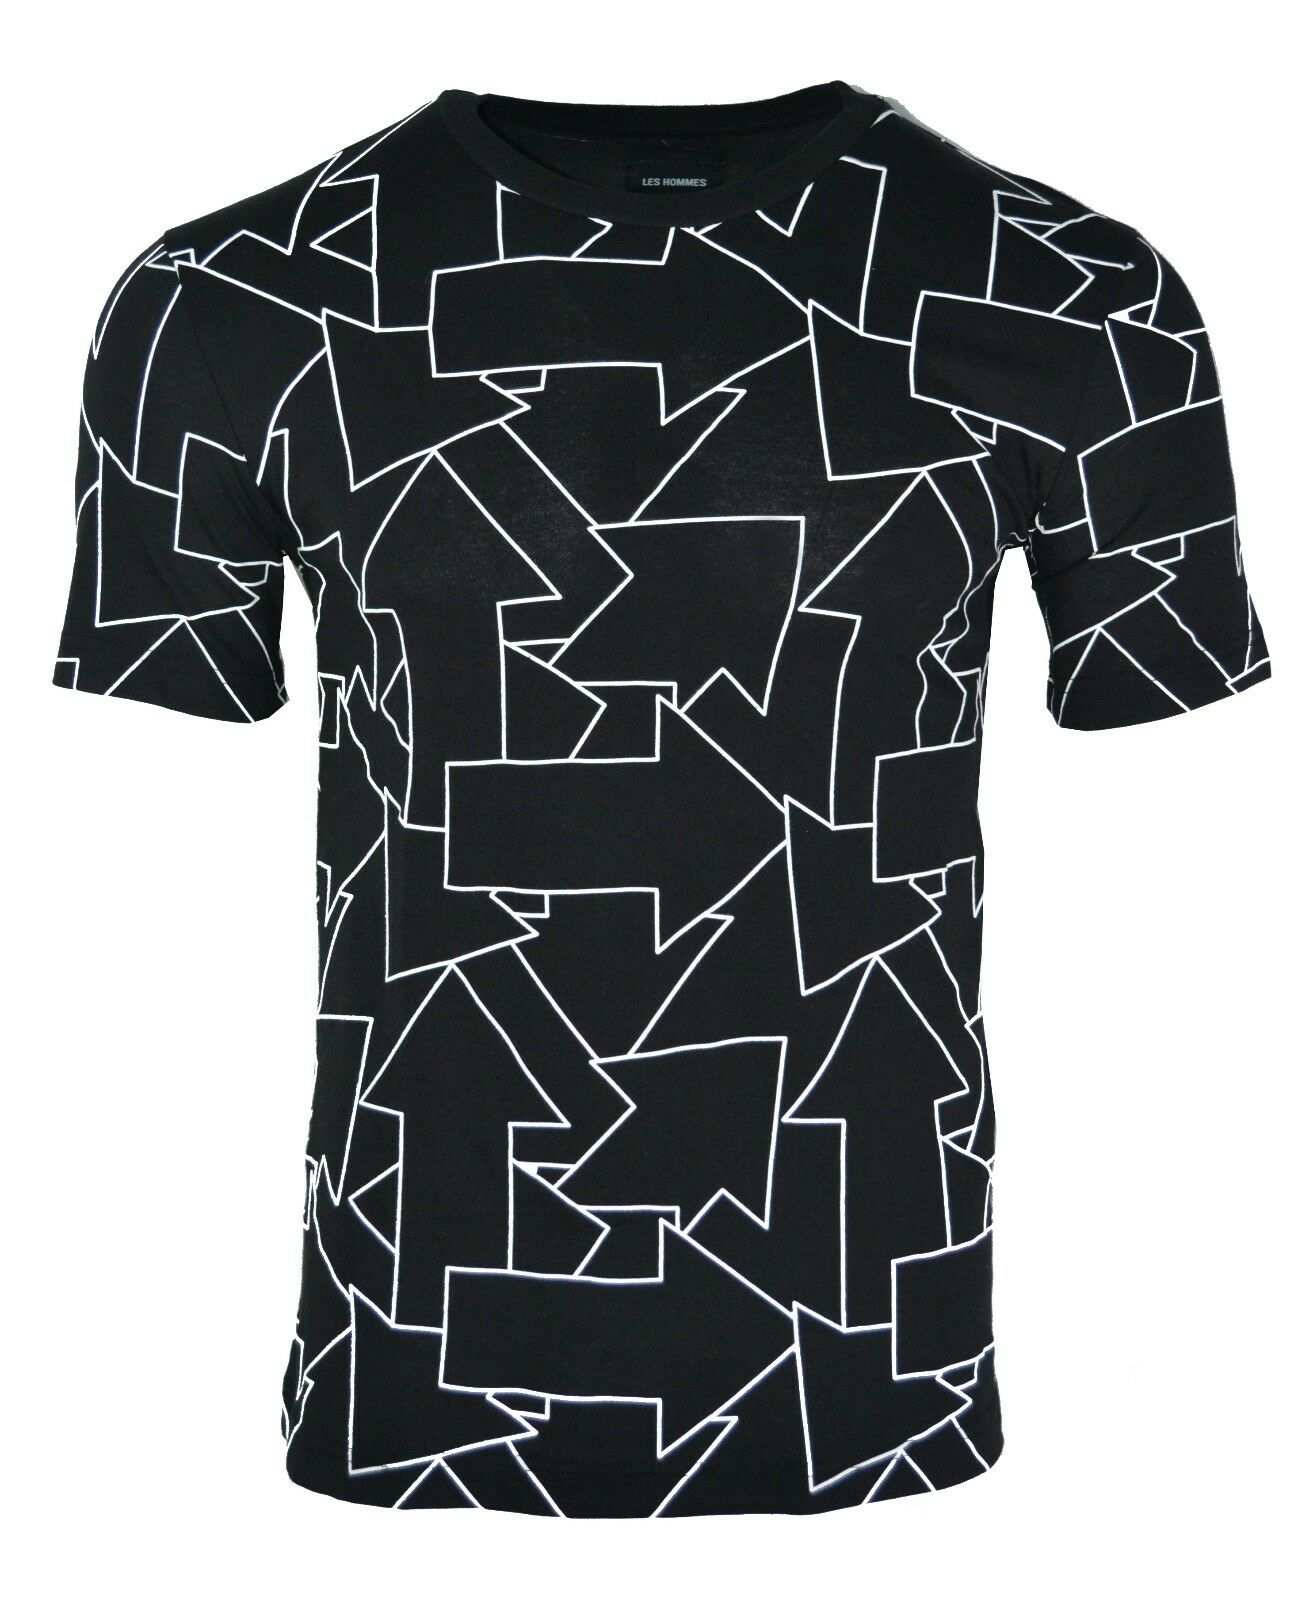 LES herren ARROW PRINT T-SHIRT schwarz & Weiß METAL LOGO PLAQUE